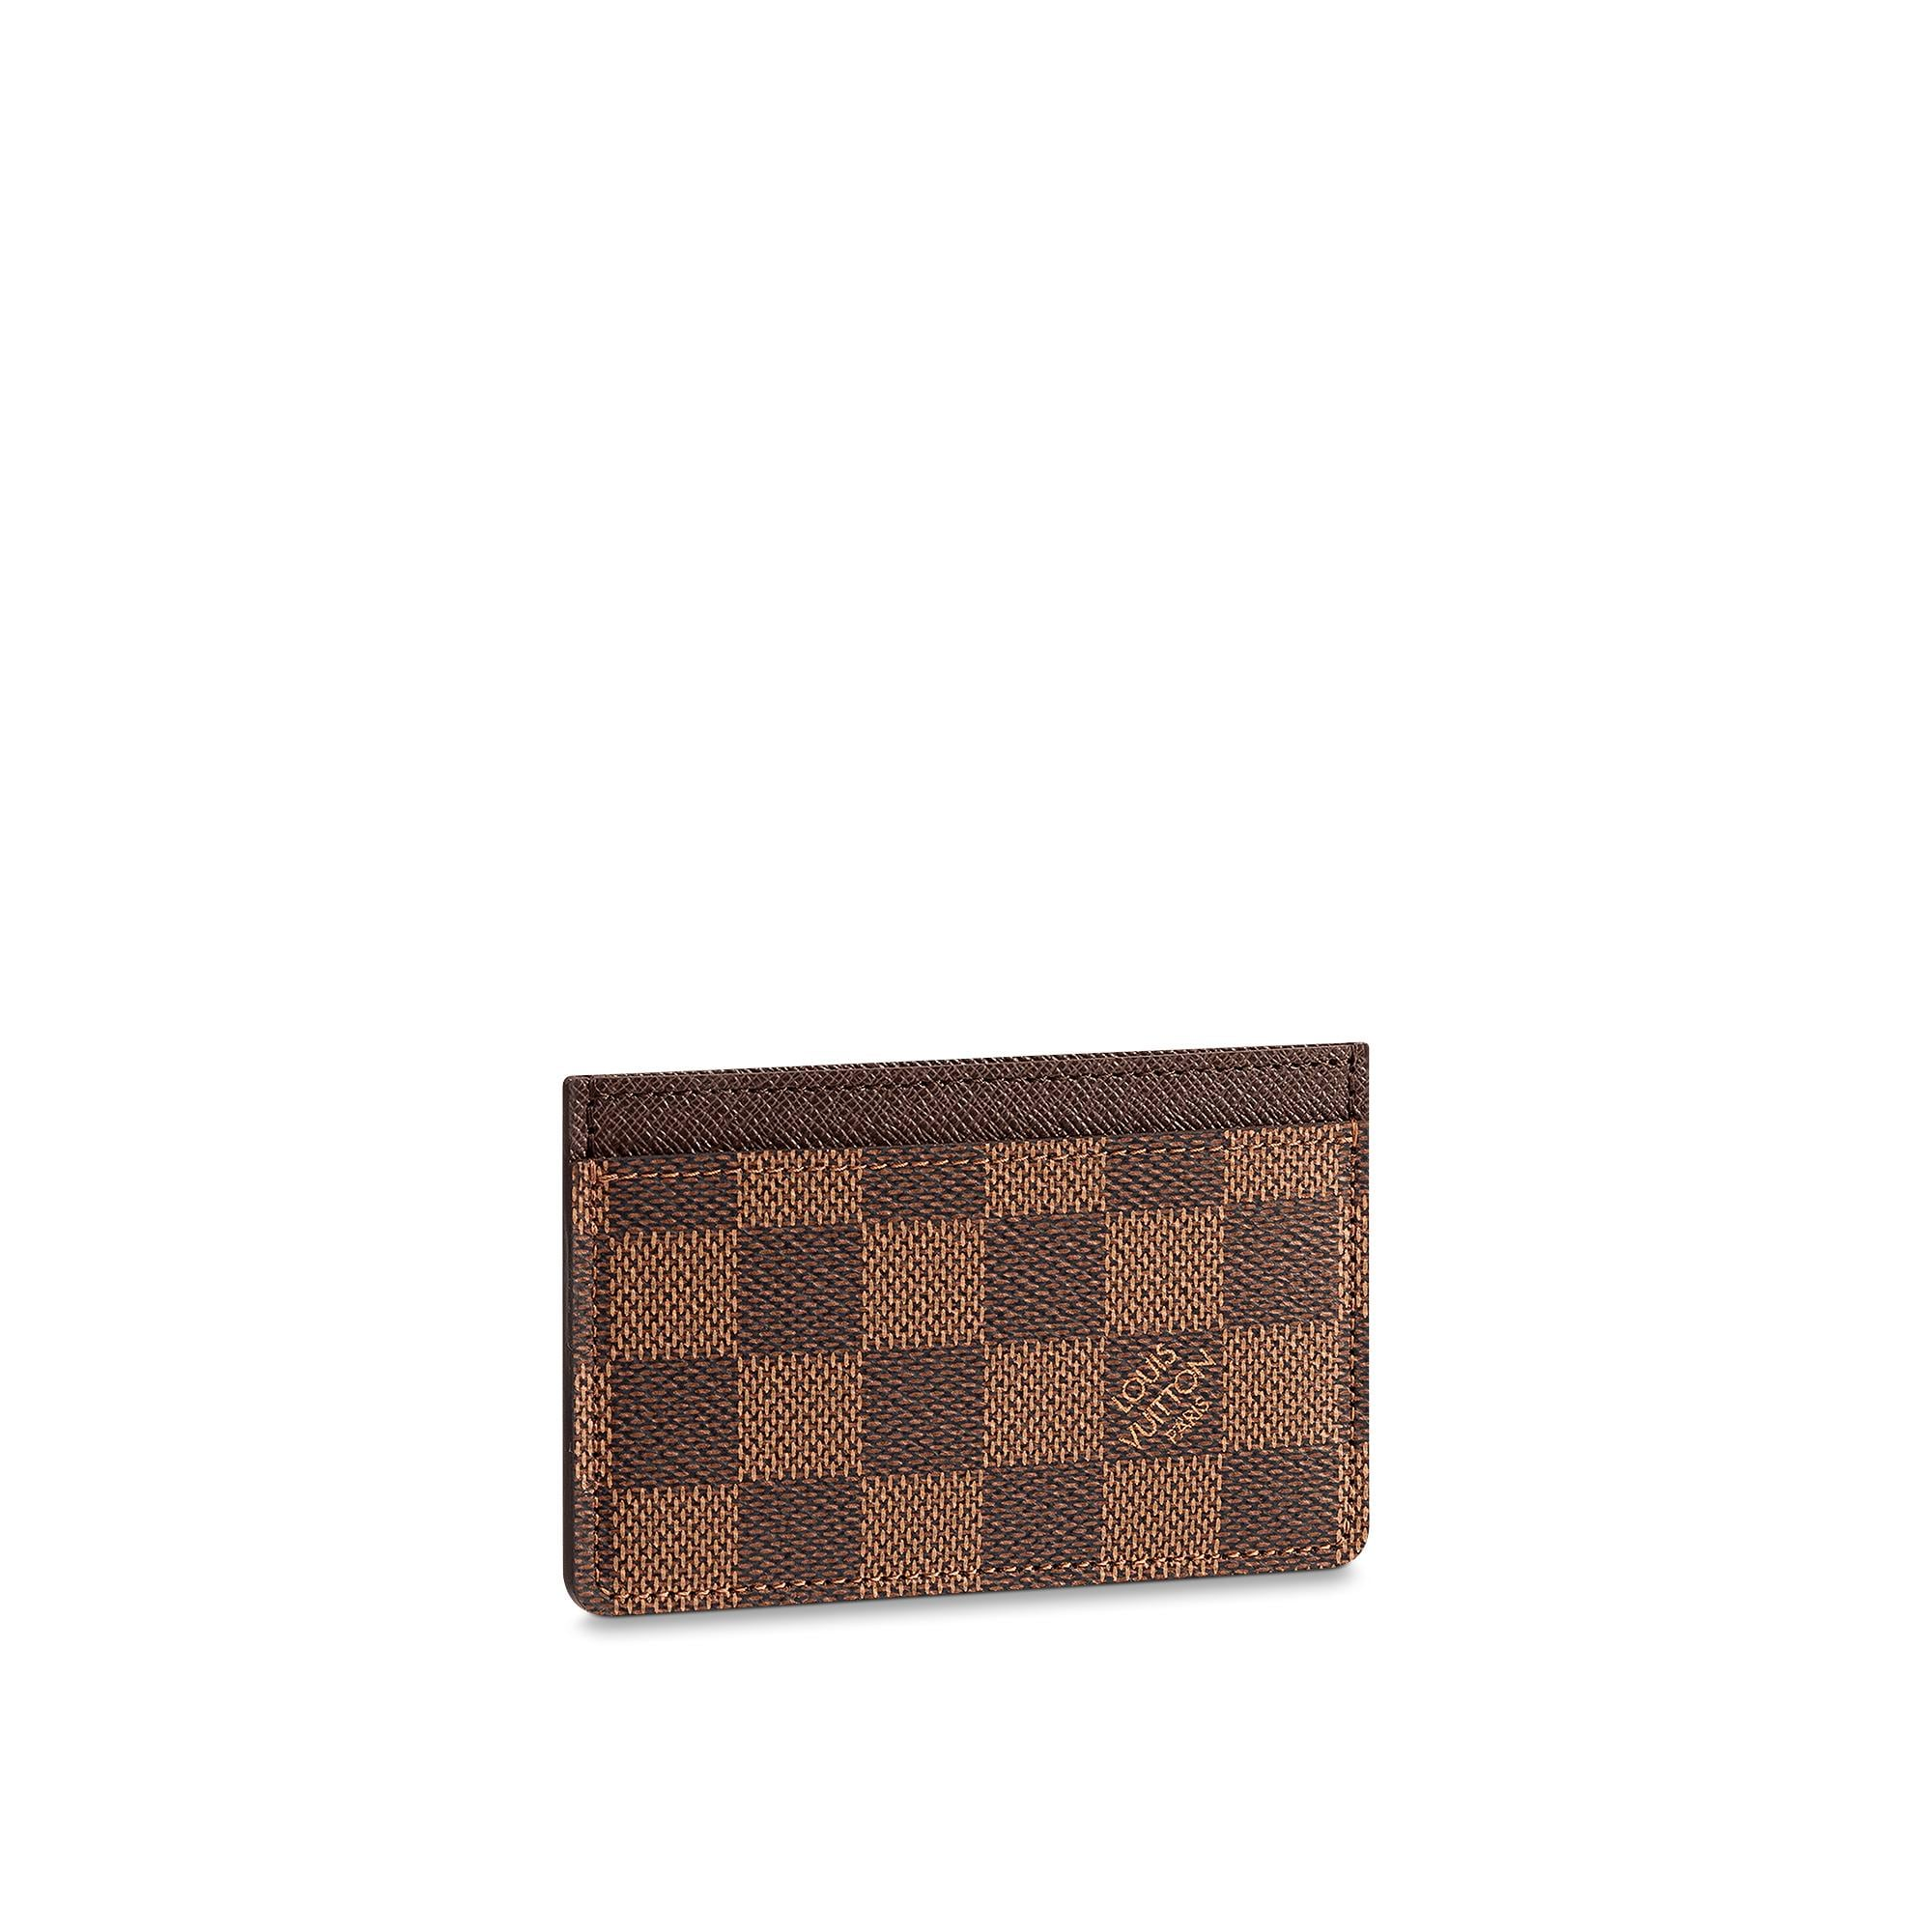 Christmas Small Leather Goods Card Holder Damier Ebene